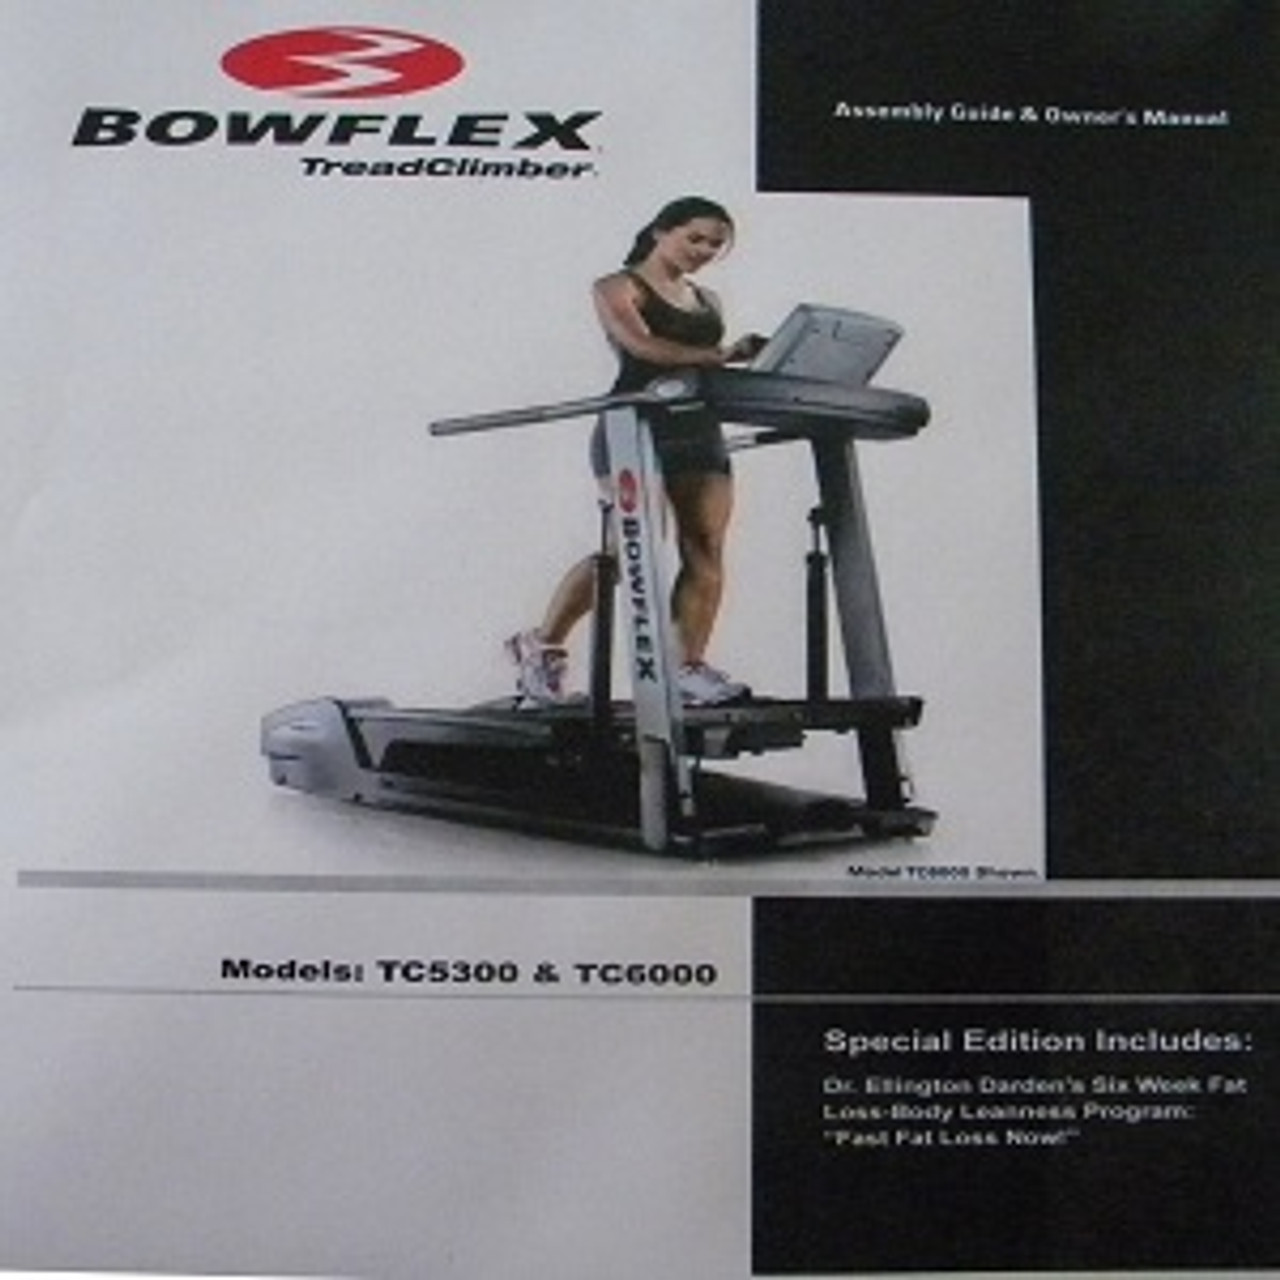 BowFlex Treadclimer Service Manual TC5300 TC6000